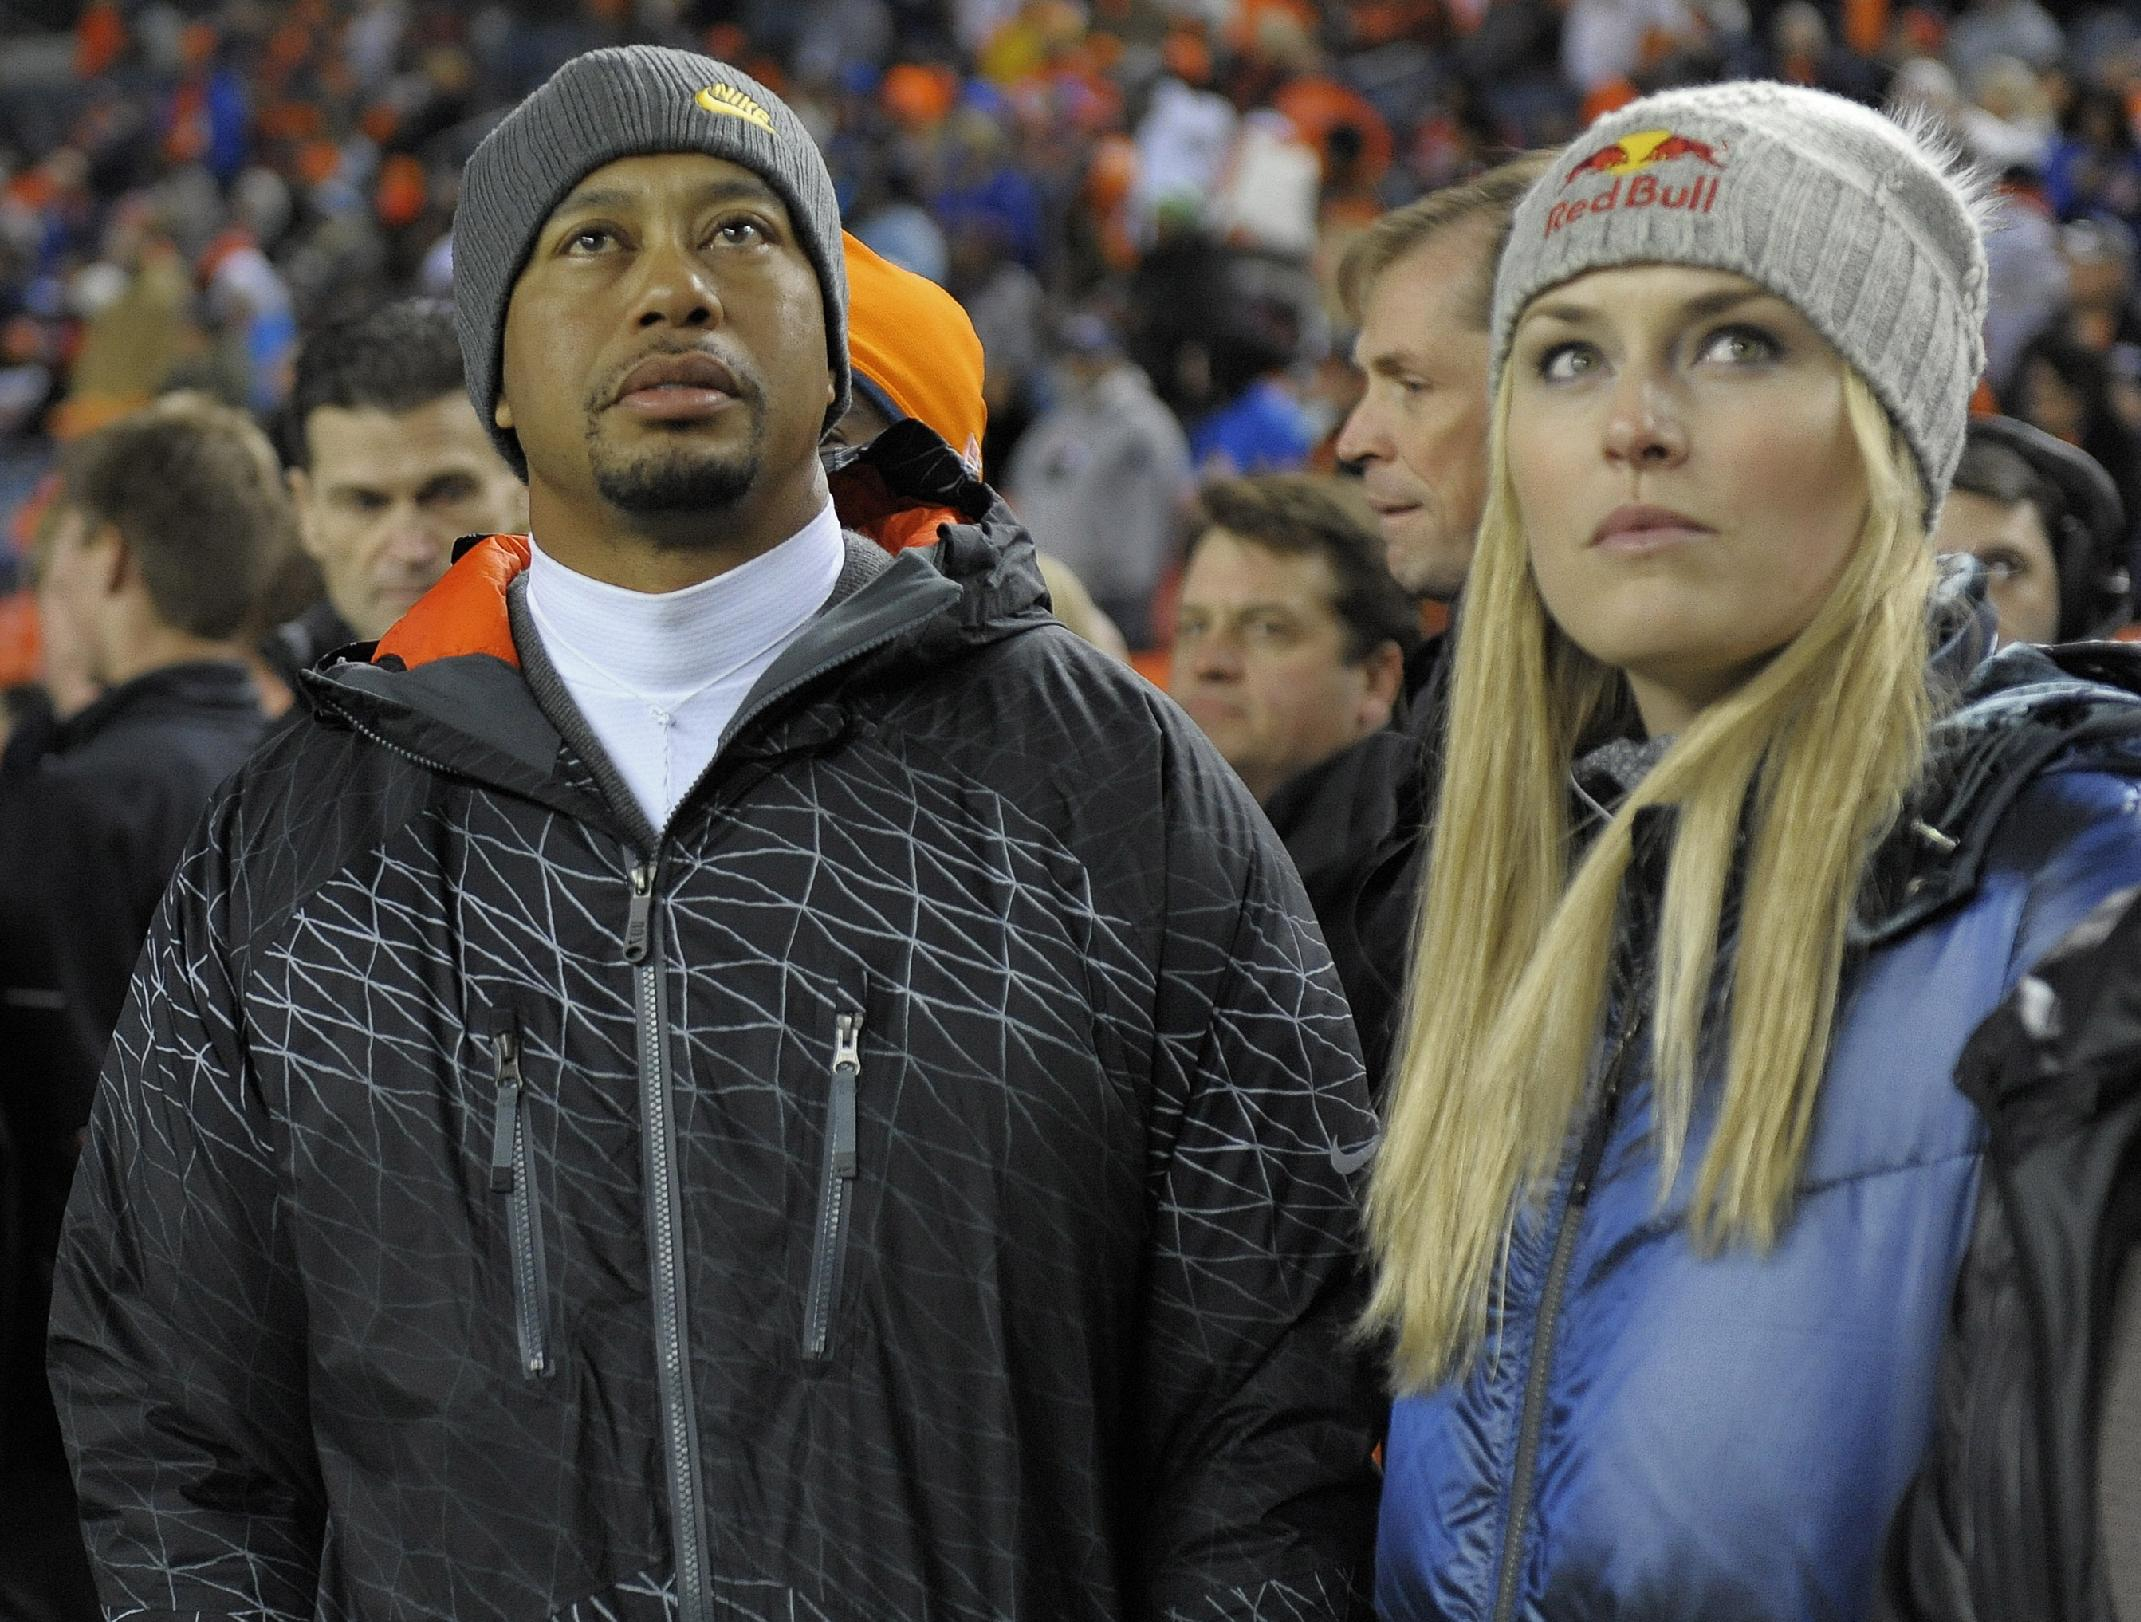 Tiger Woods, left, and Lindsey Vonn watch from the sidelines as the Denver Broncos and the Kansas City Chiefs warm up before an NFL football game, Sunday, Nov. 17, 2013, in Denver